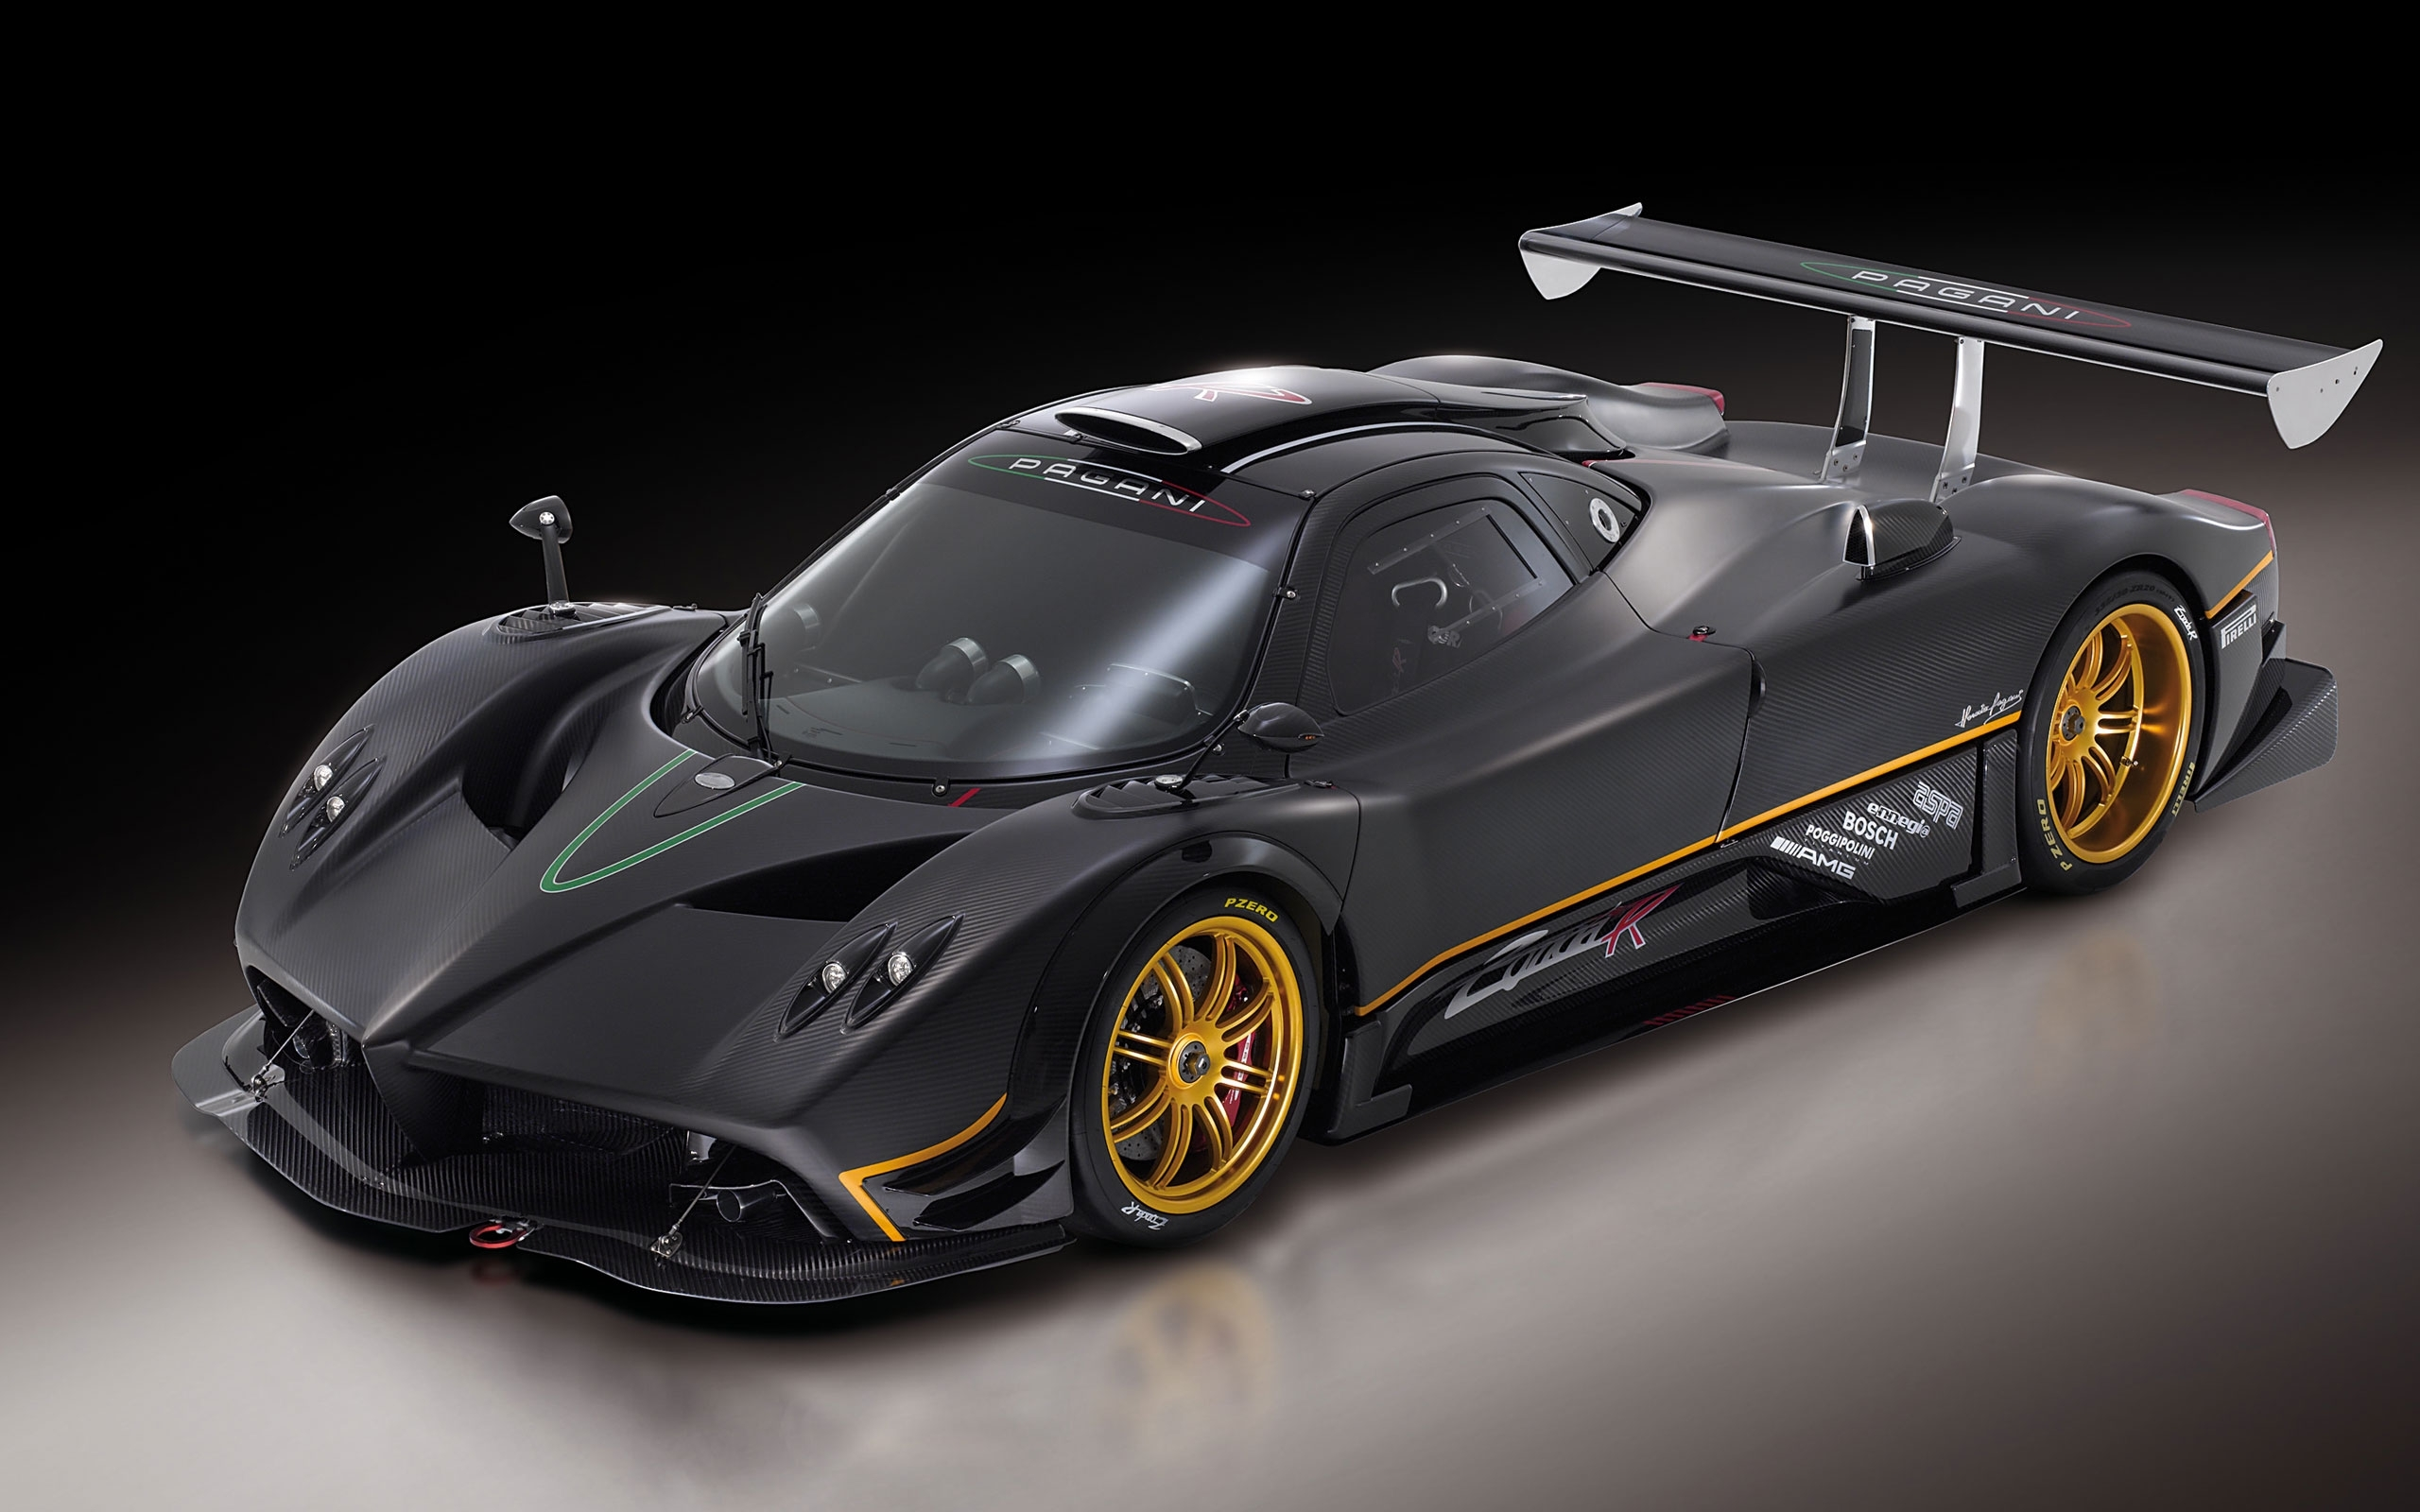 10 New Pagani Zonda R Wallpaper FULL HD 1920×1080 For PC Desktop